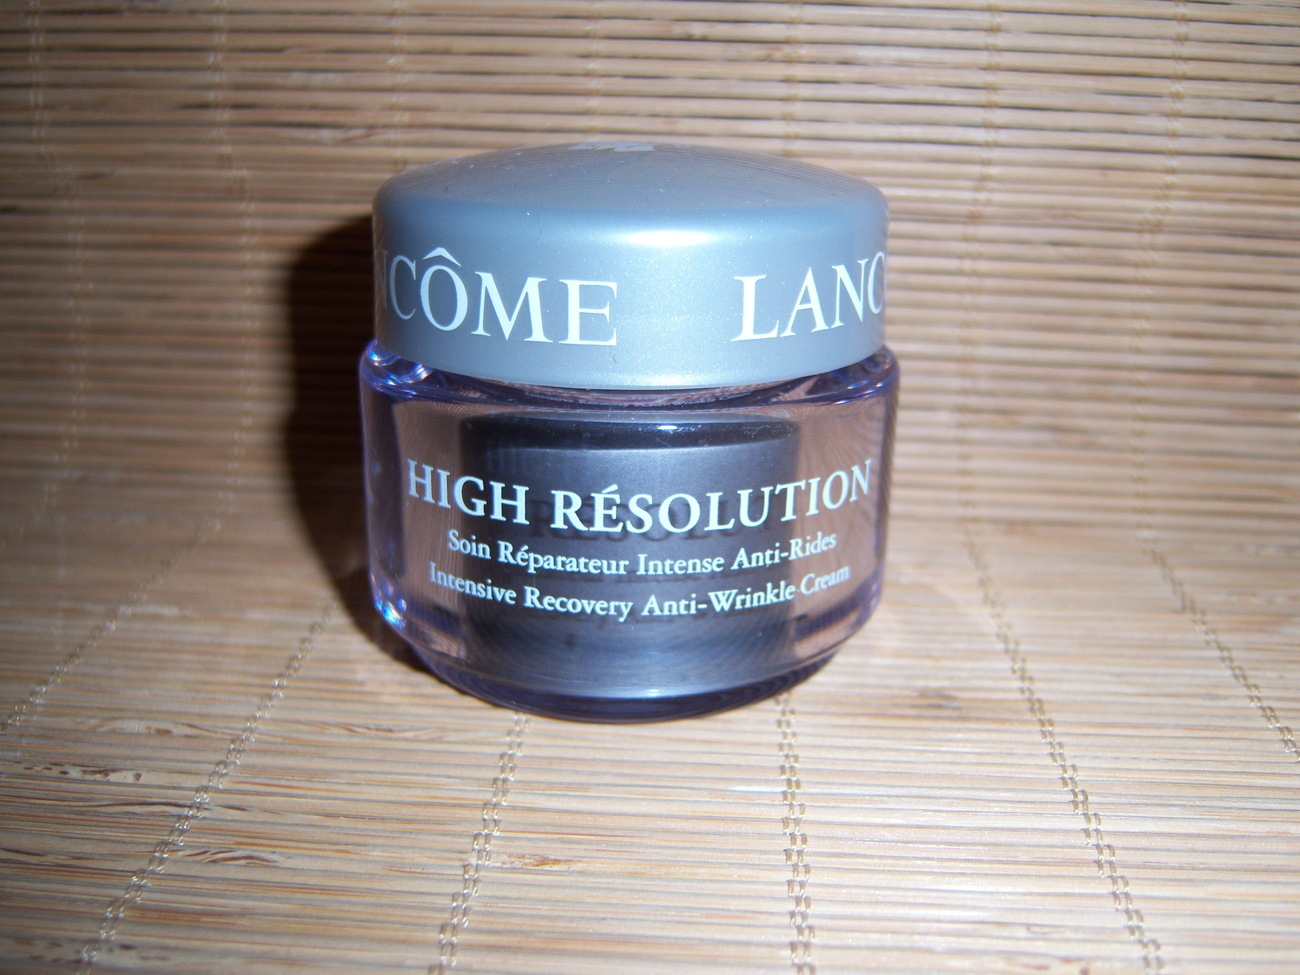 Lancome Hight Resolution  Size: 1.OZ- 30G - $12.99